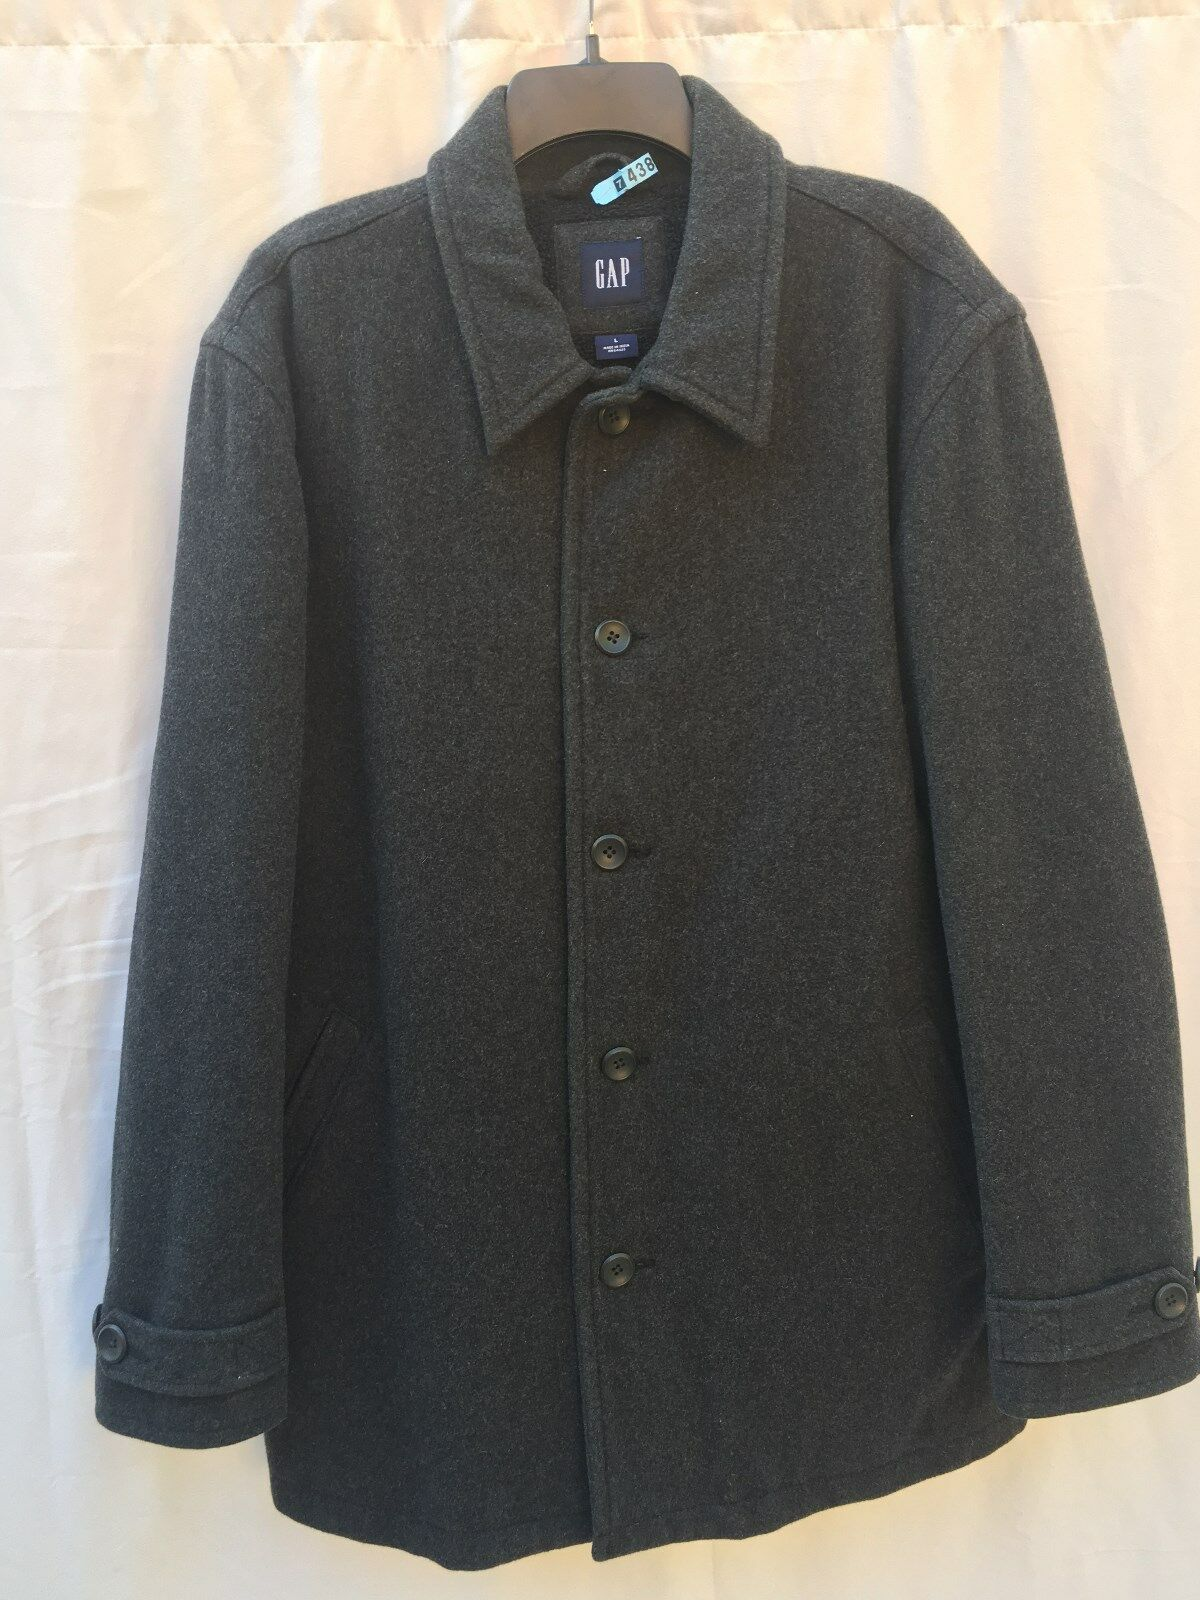 Men's GAP Wool Blend Dark Charcoal Gary Winter Coat Size L Fleece Lining